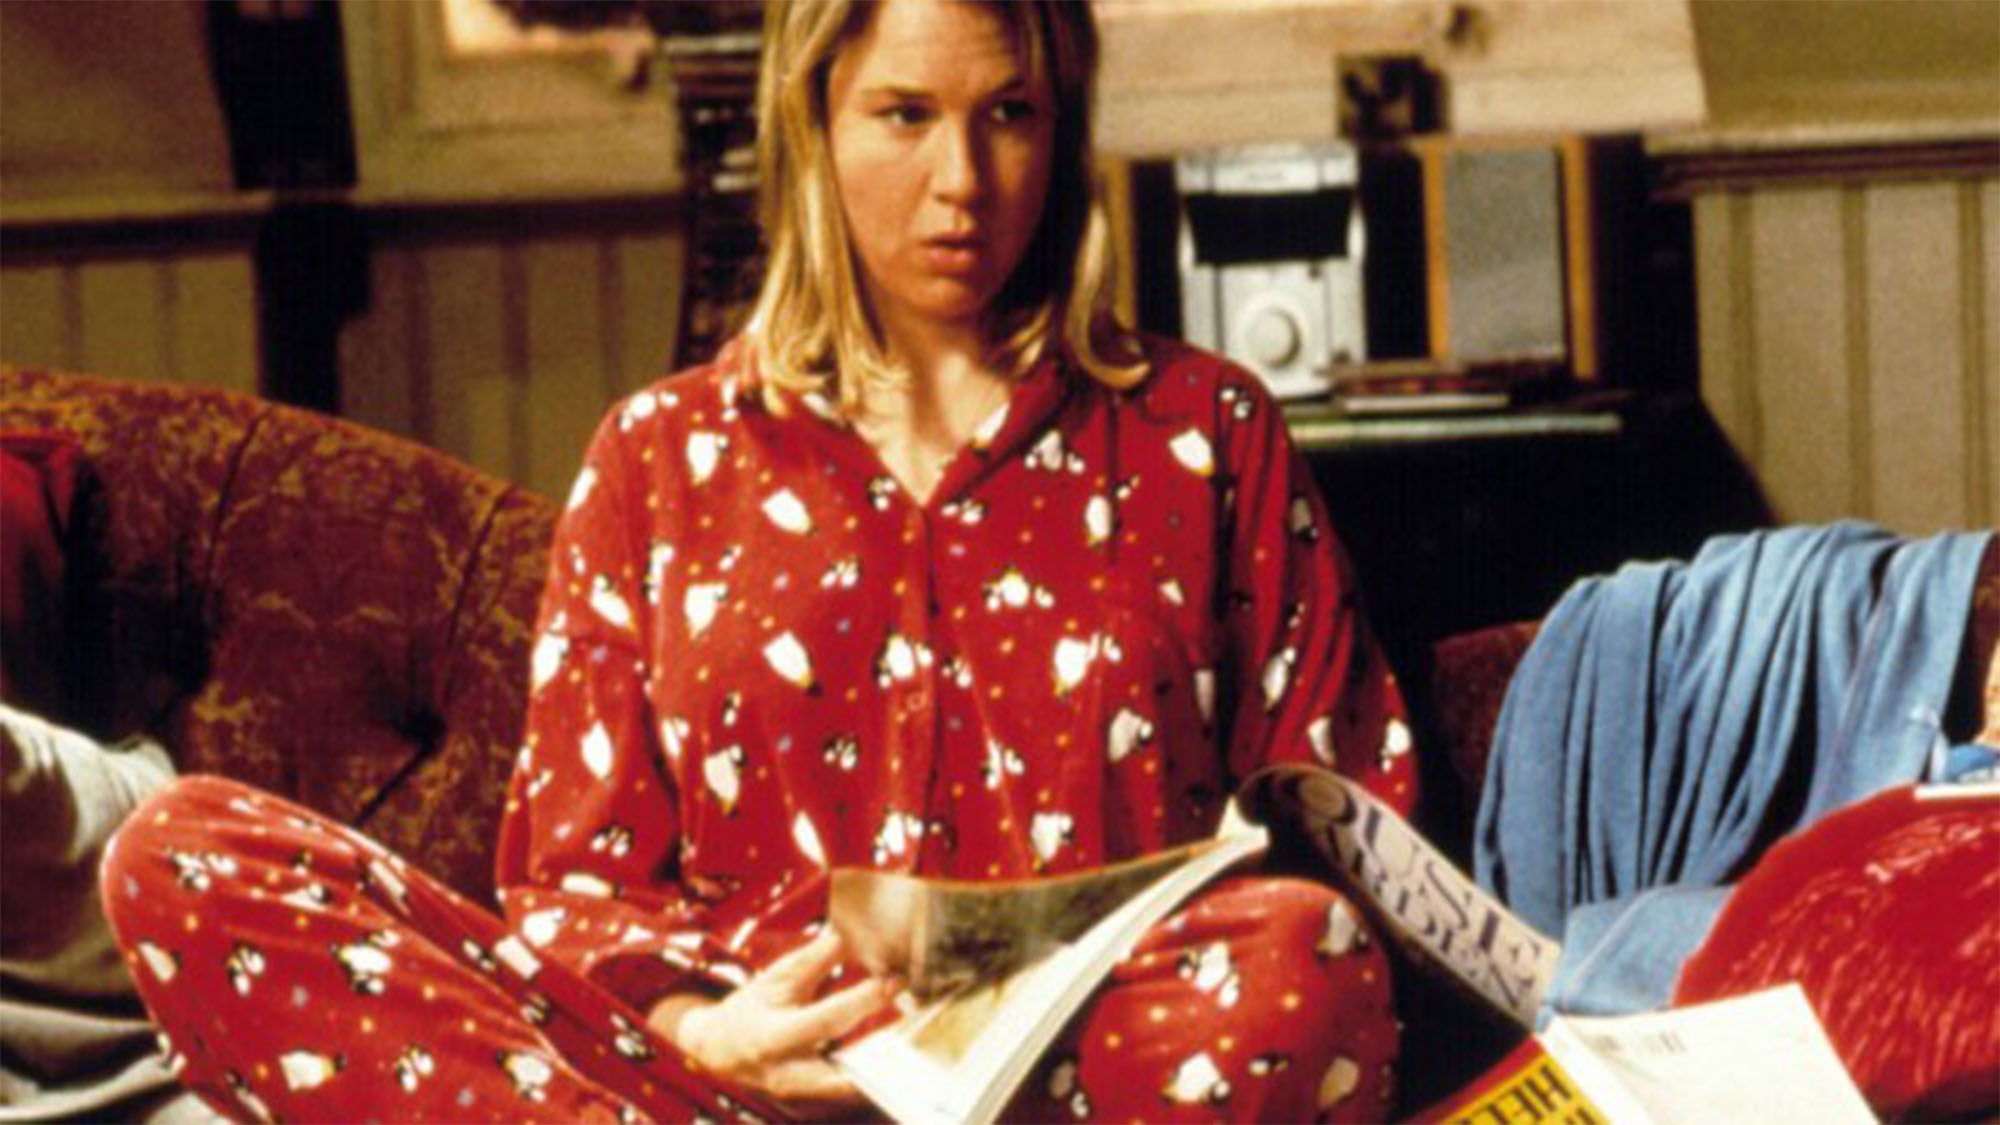 Scrooging is an awful Christmas dating trend, and yay